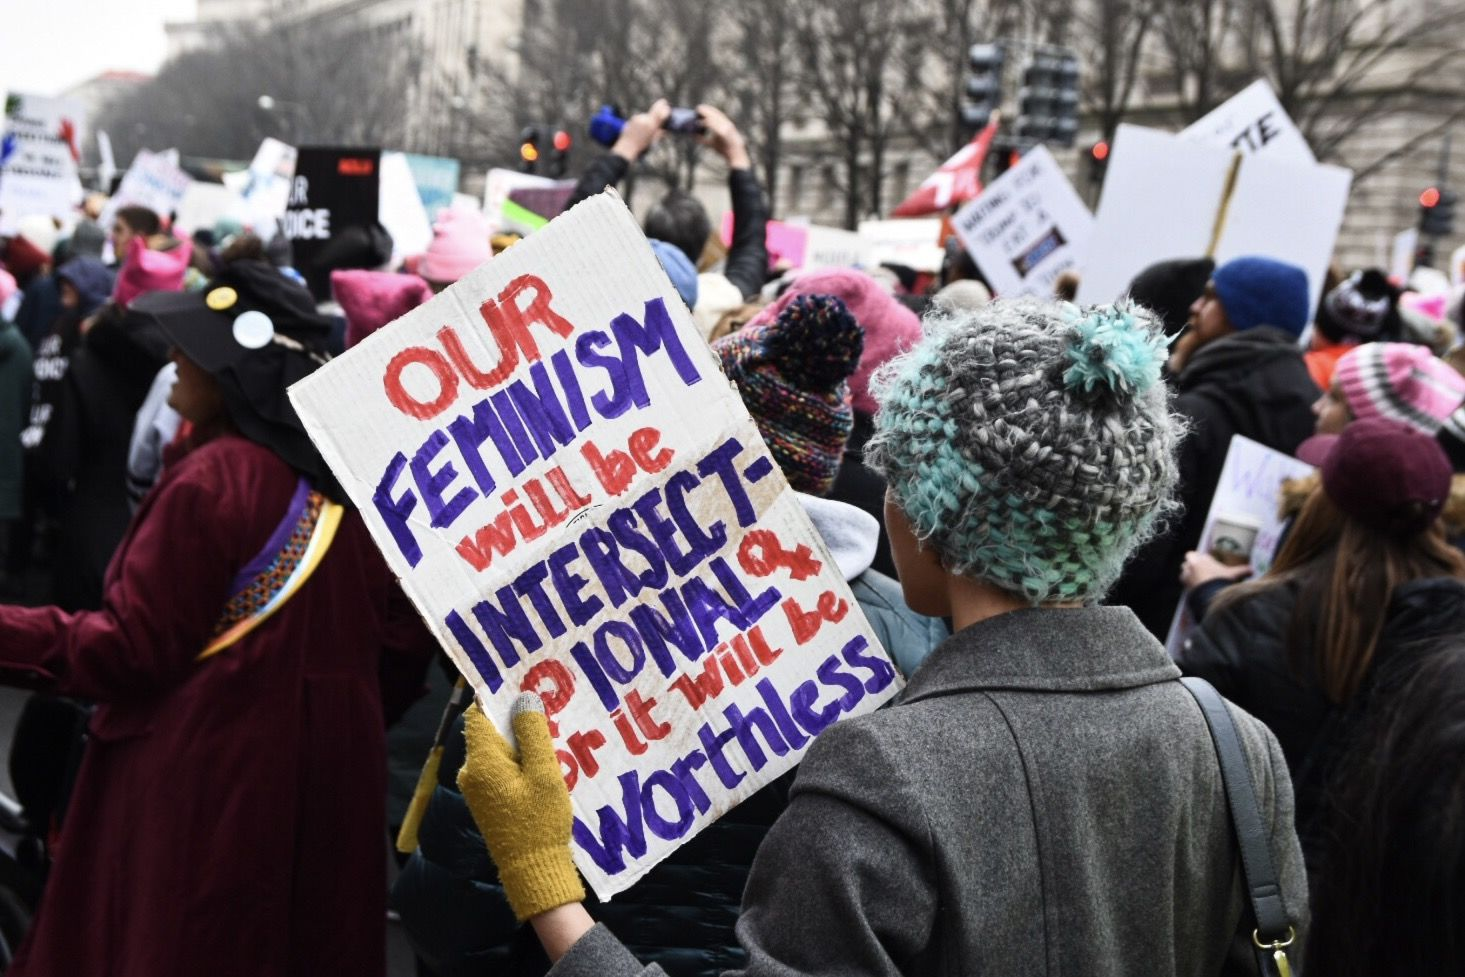 A protester rounds the corner of Pennsylvania Avenue onto 11th Street. The Women's March has recently faced criticism over a lack of inclusiveness among its organizing. (WTOP/Alejandro Alvarez)